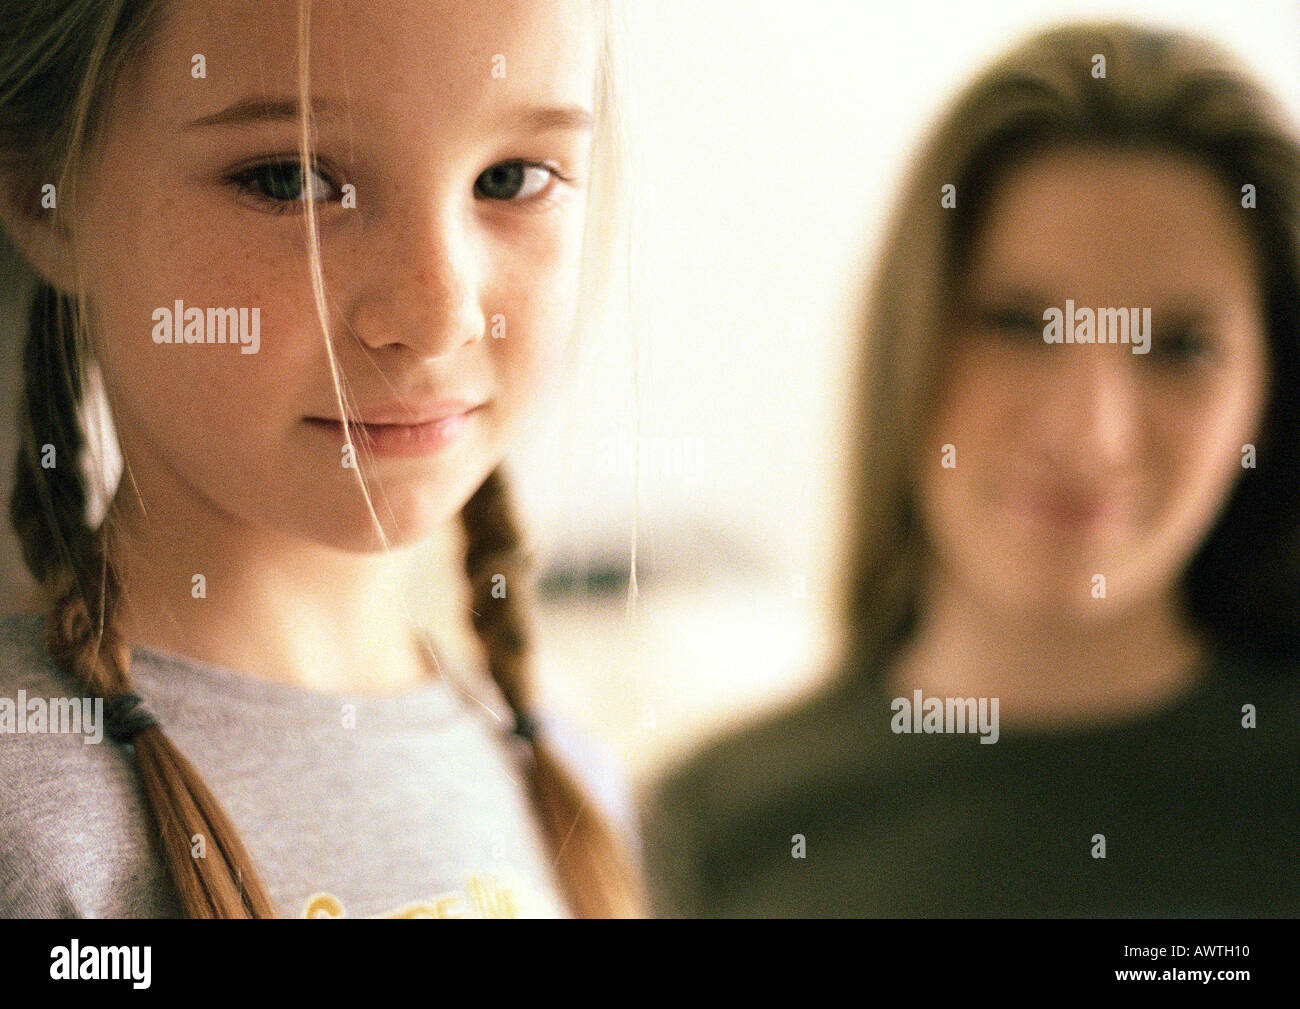 Two girls, younger girl in foreground, older girl blurred in background, portrait - Stock Image